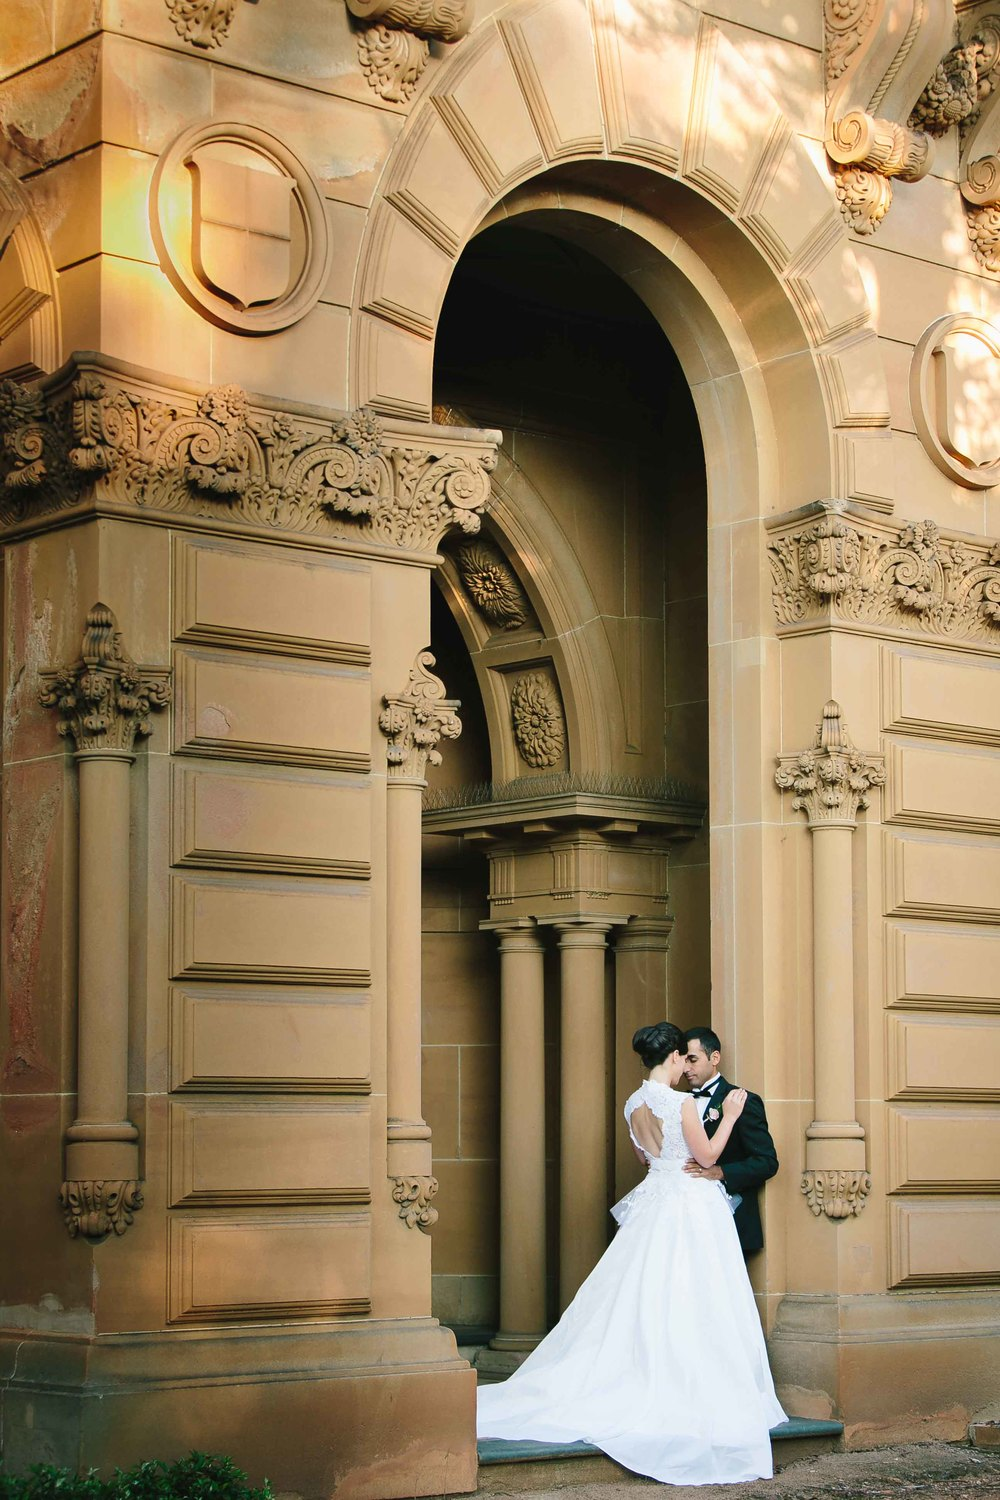 Annie and Frank wedding Santa Sabina Sydney by Milton Gan